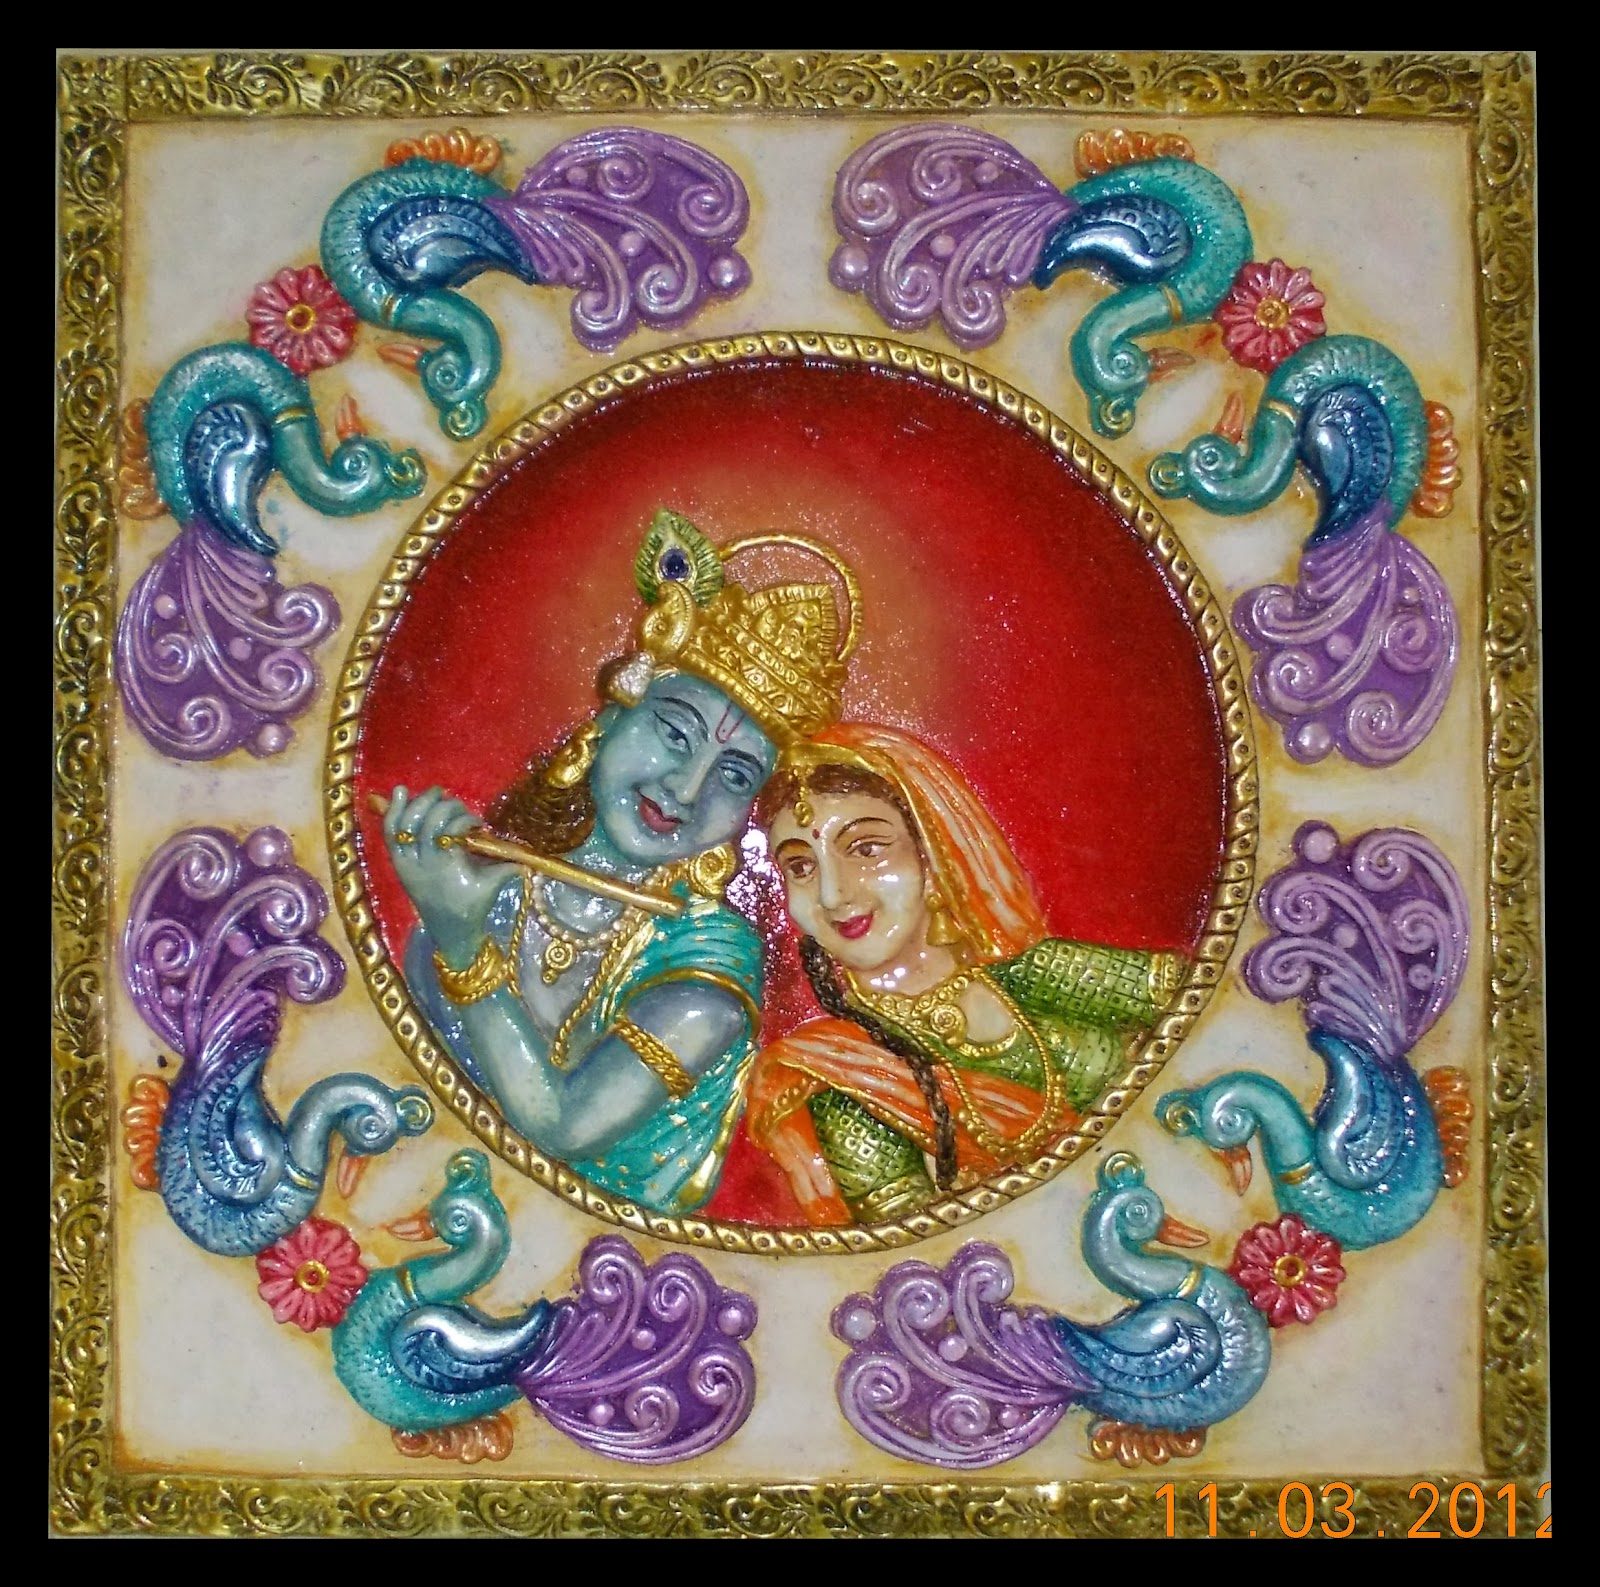 Mural art by datta vaidya ceramic furniture mural madv fm 1 for Ceramic mural painting